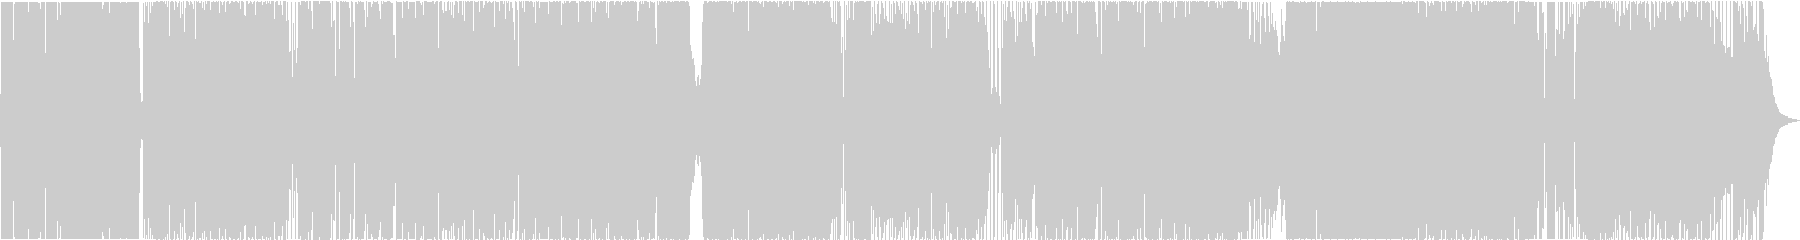 Strings + 4 fashionable 4 on the floor's unreproduced waveform